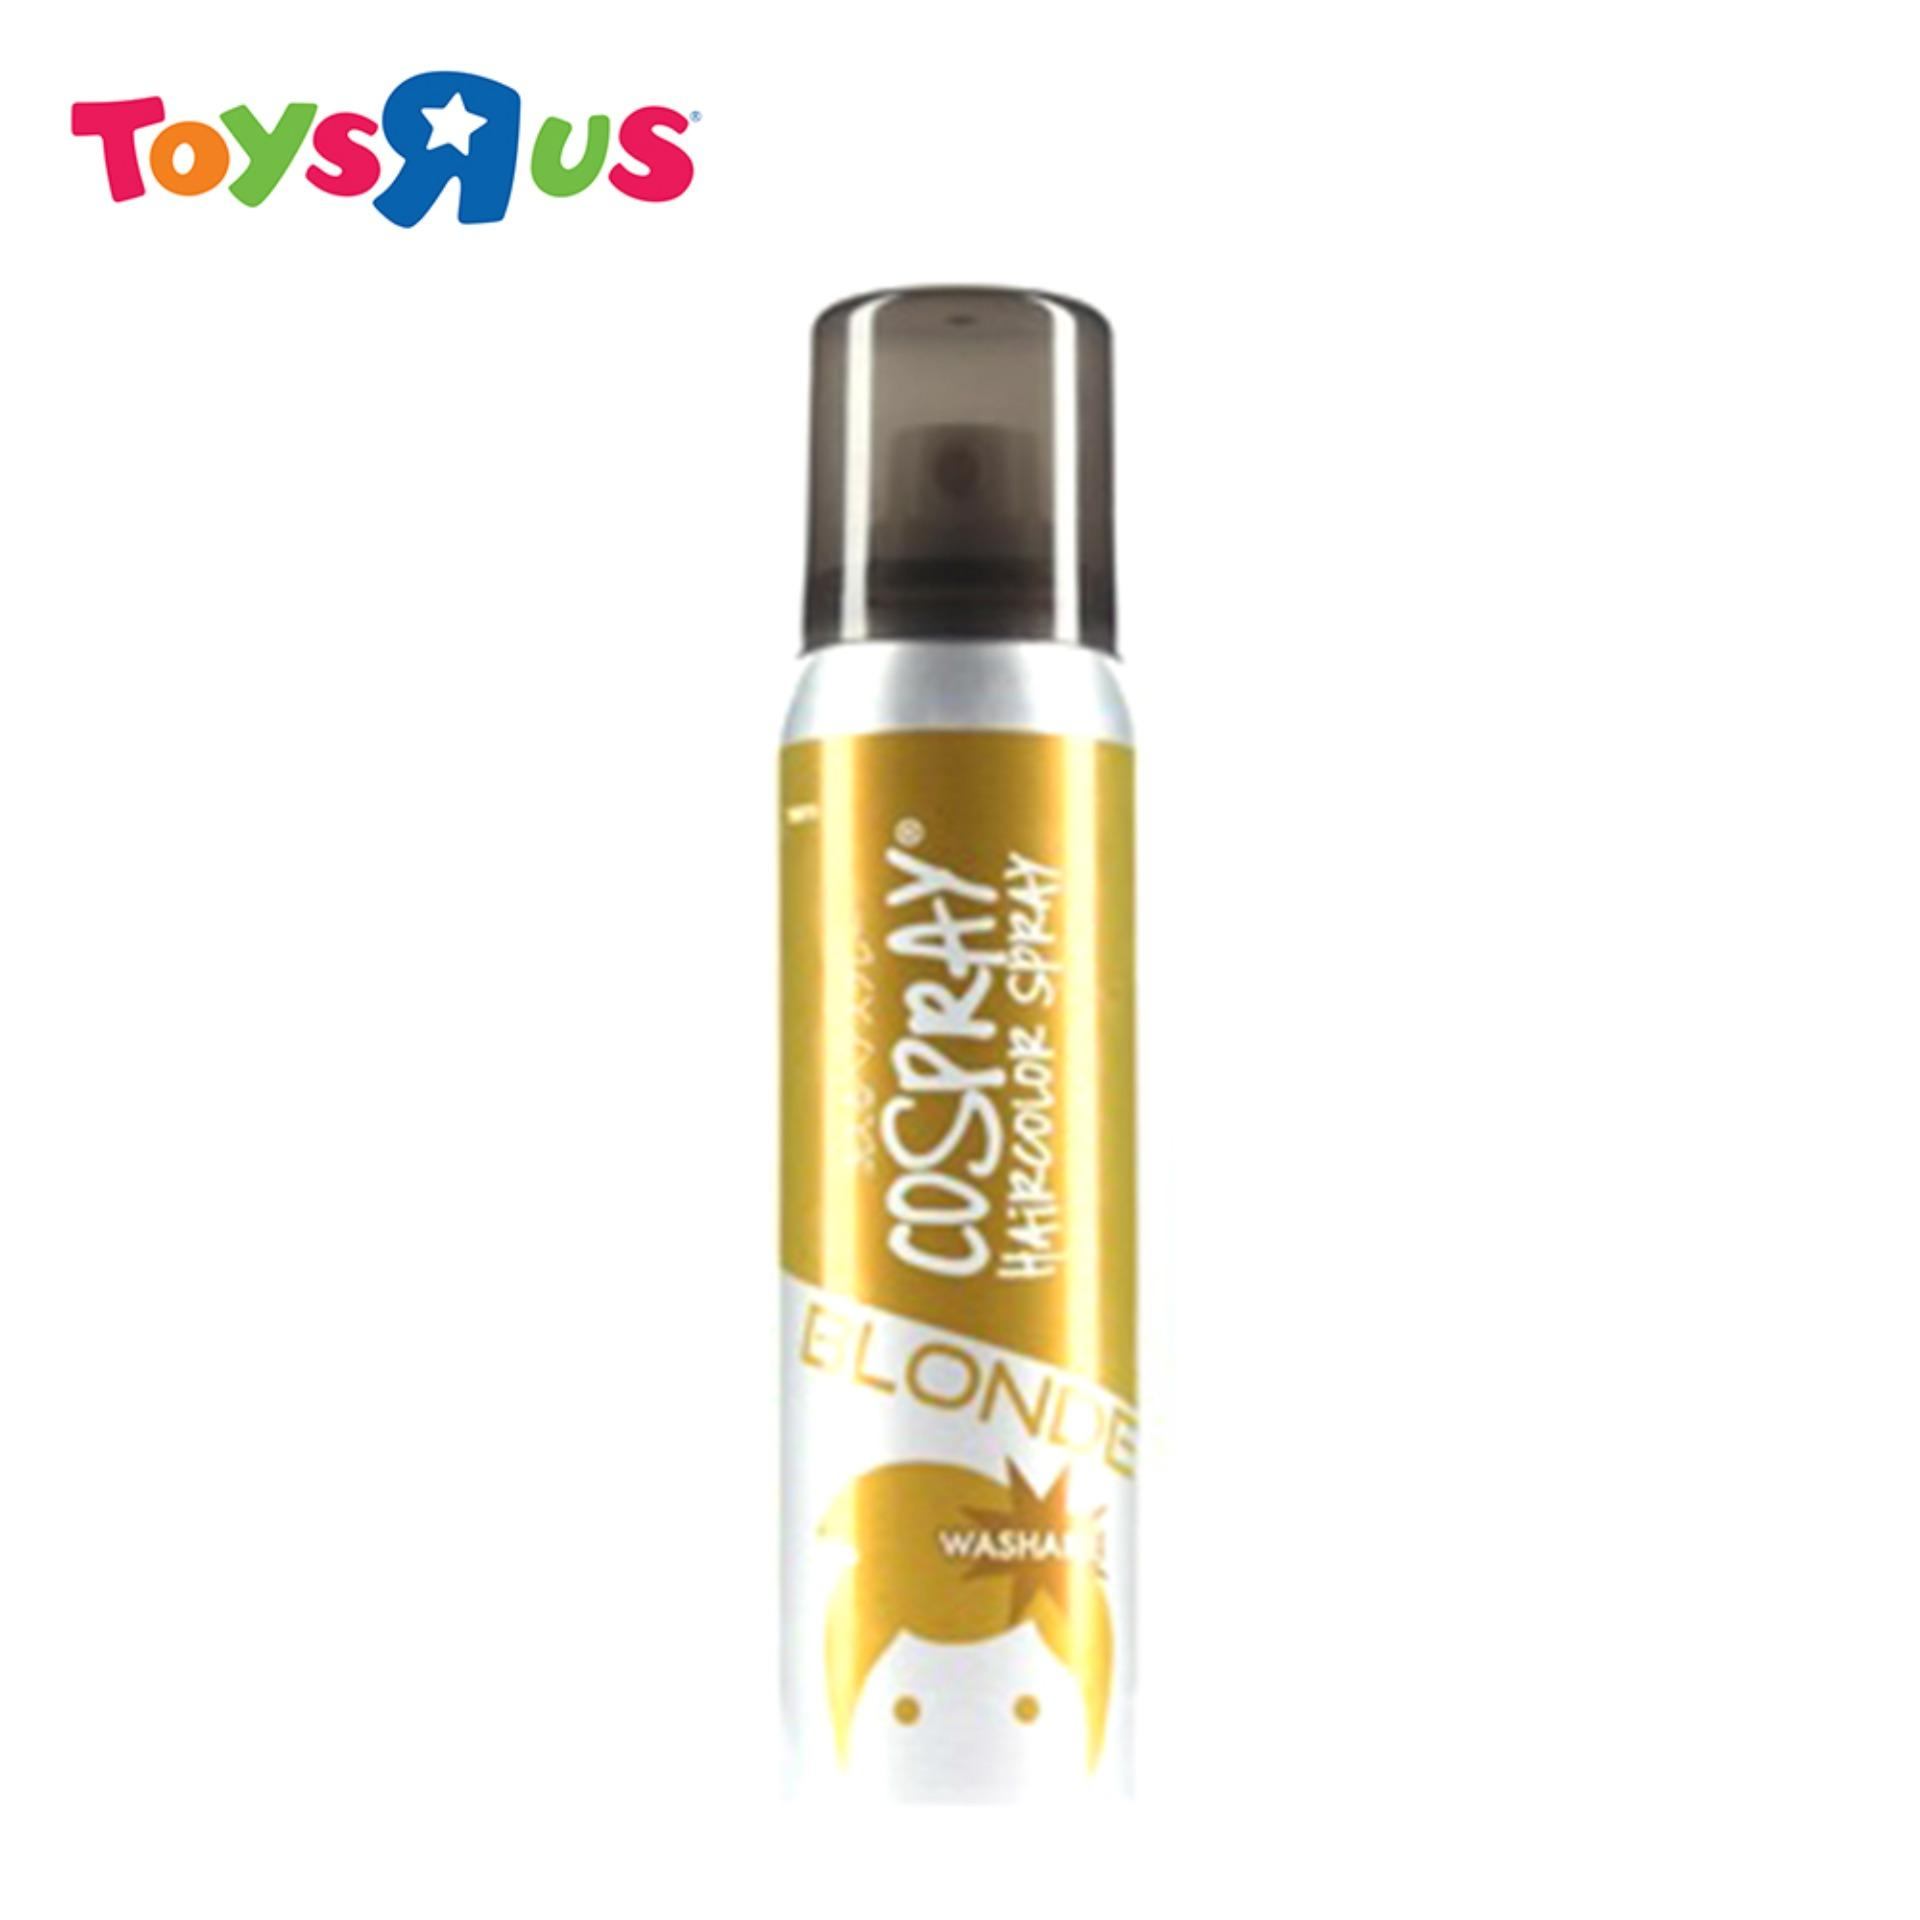 Cospray Washable Hair Color Spray (blonde) By Toys R Us.